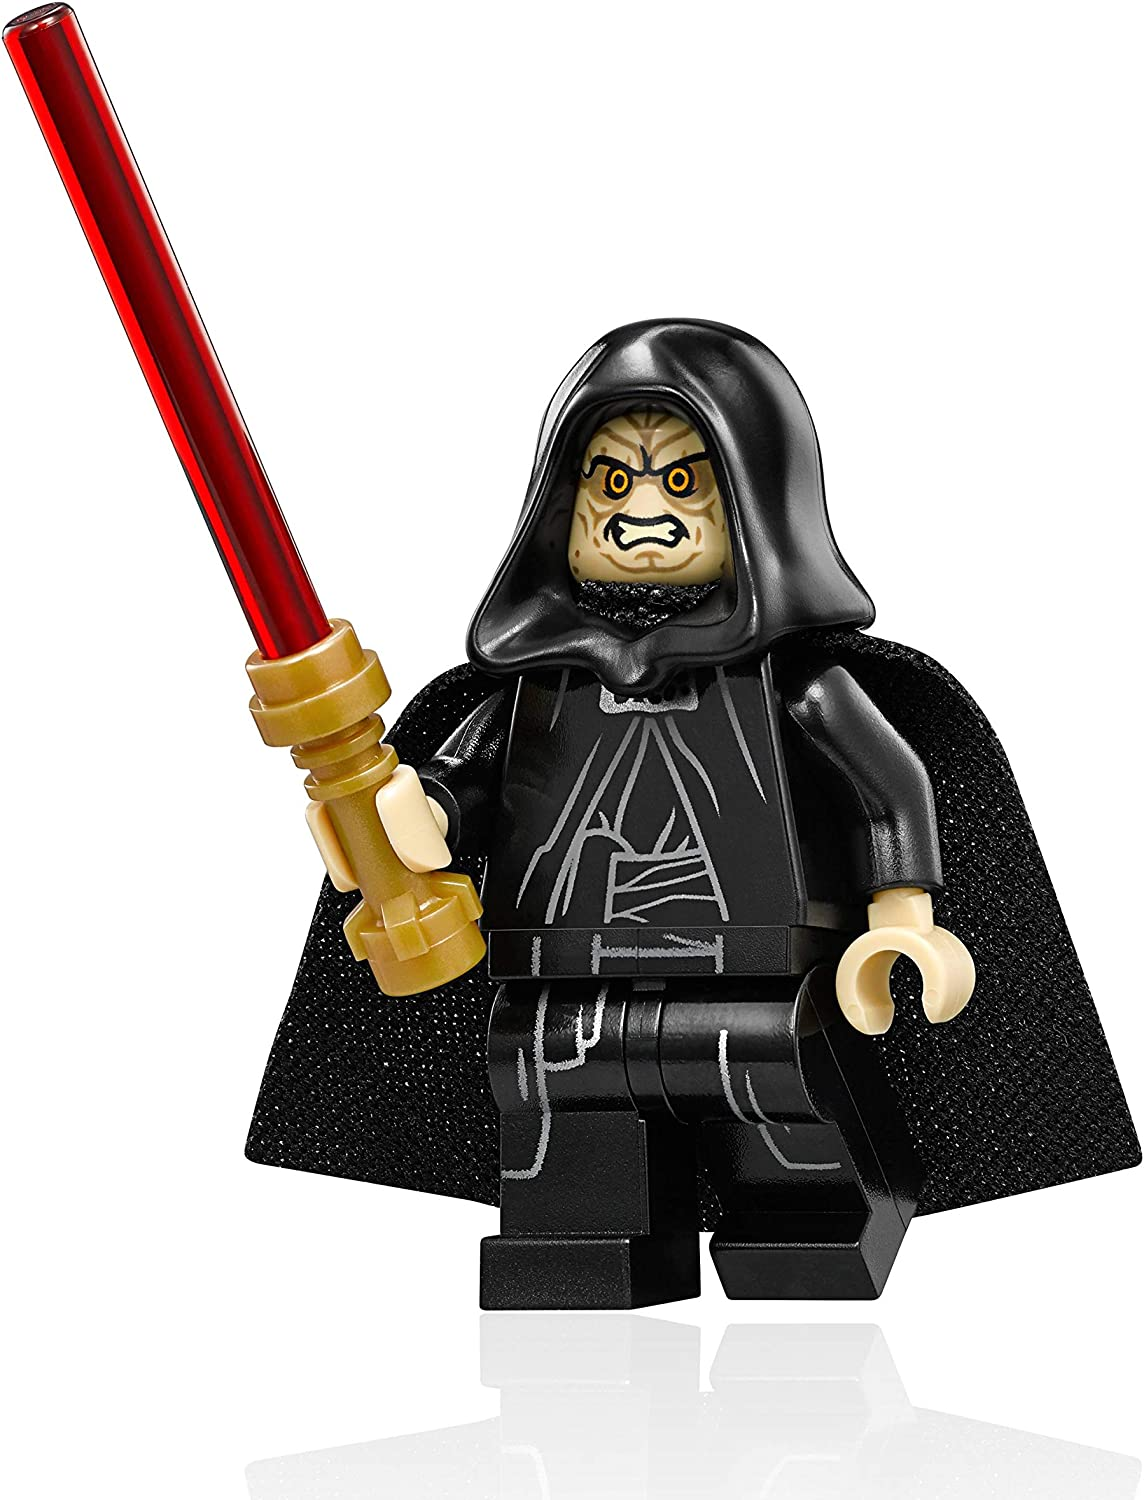 LEGO Star Wars - Emperor Palpatine Minifigure with Lightsaber 2017